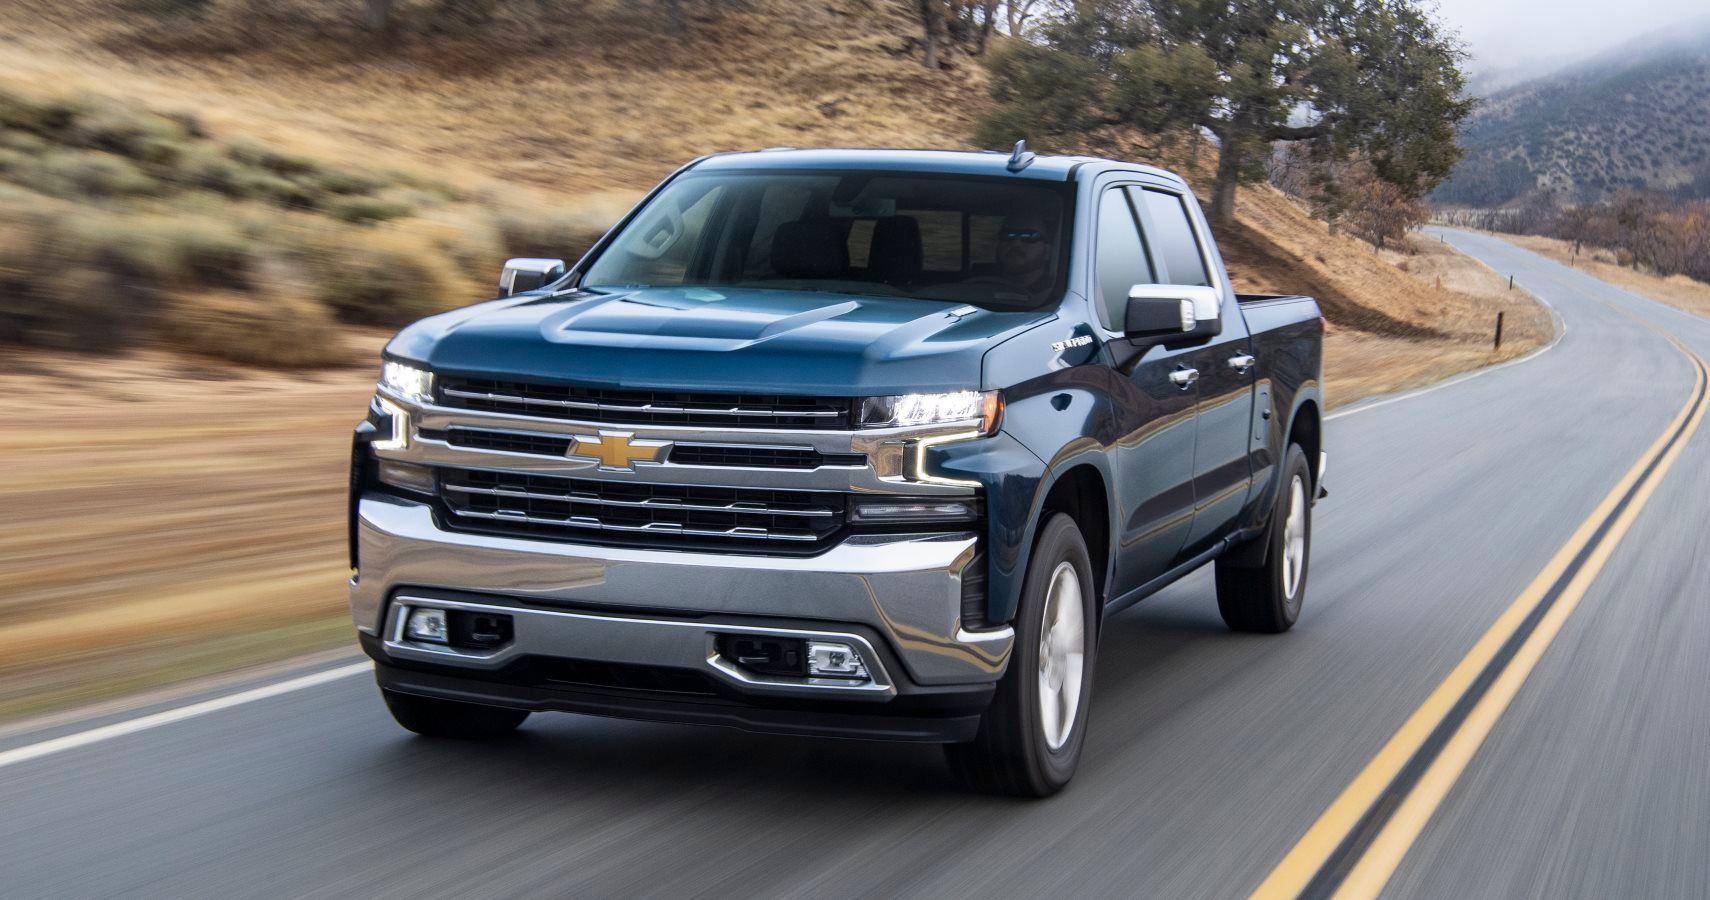 Duramax Diesel Arrives For 2020 Chevrolet Silverado | HotCars